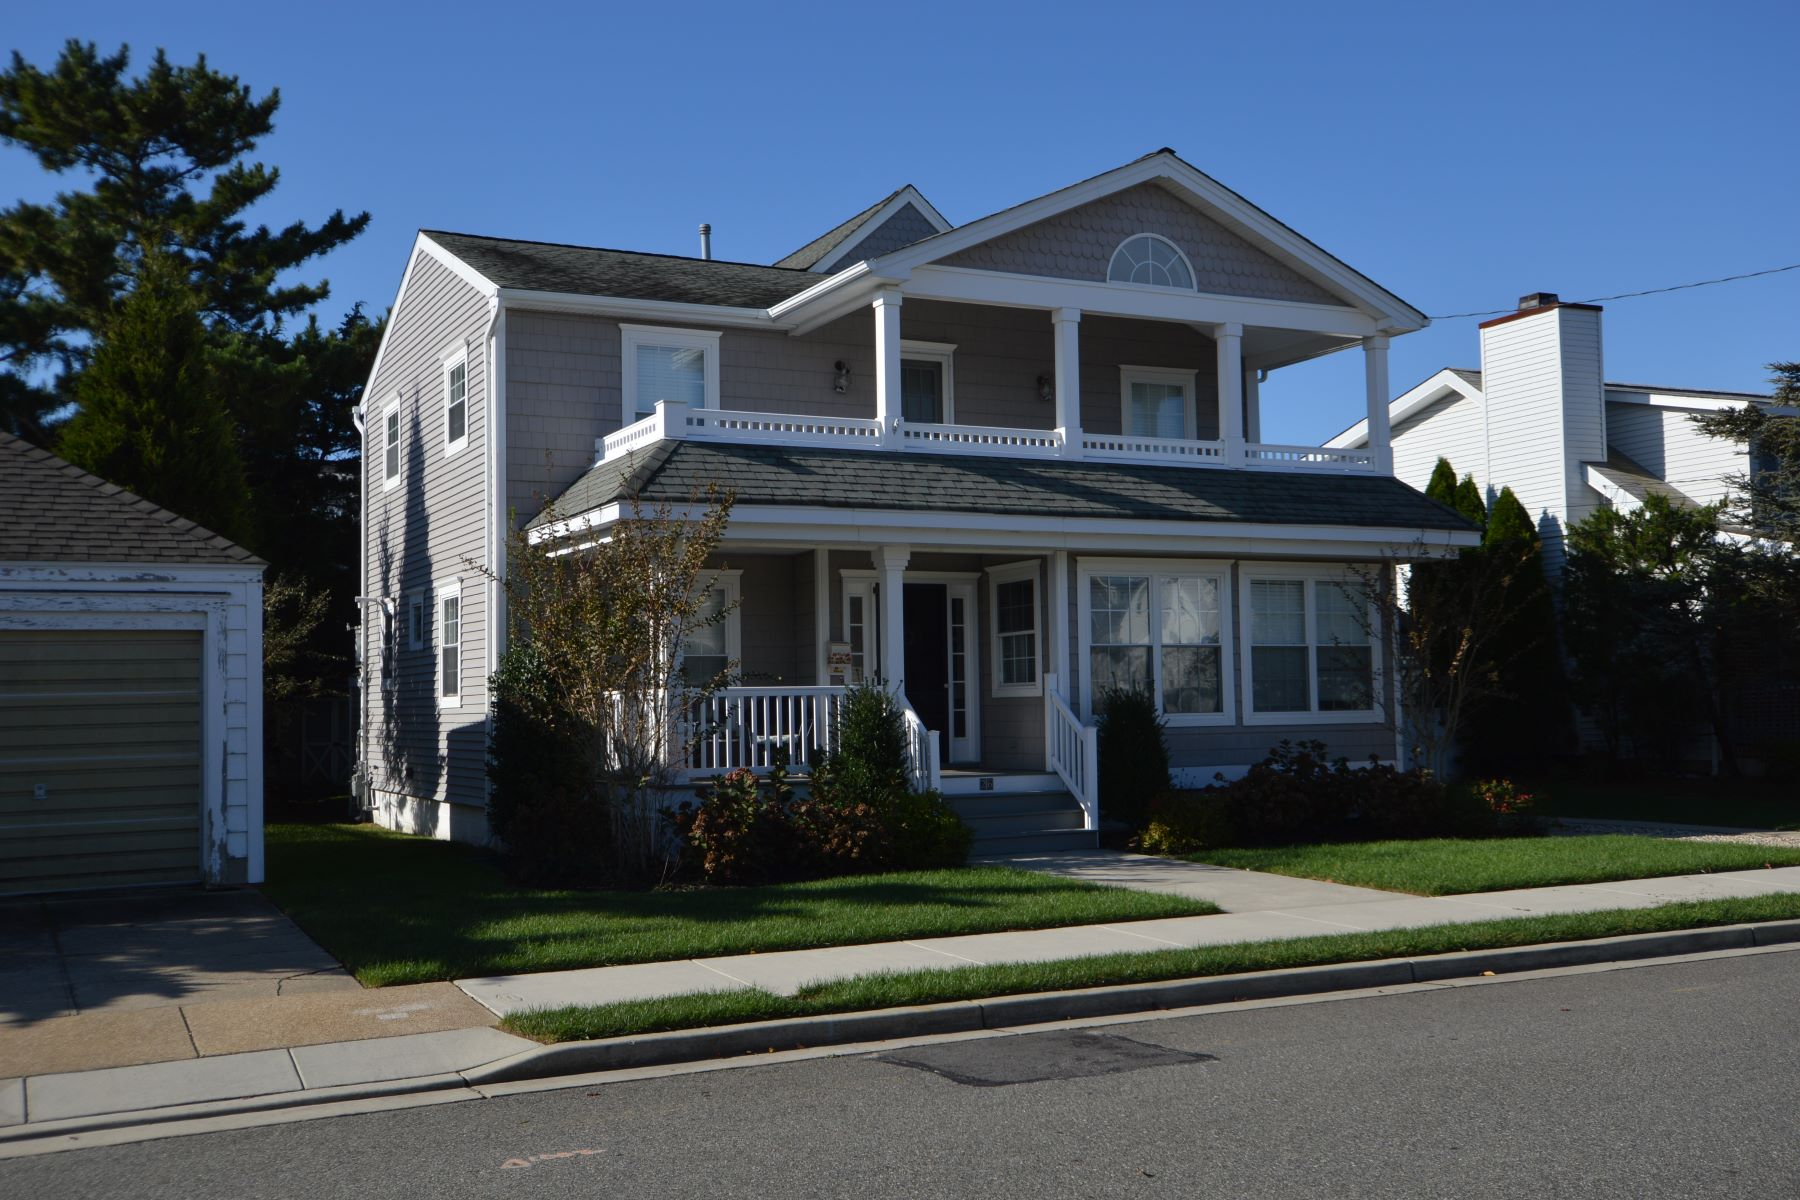 Single Family Home for Rent at 26 W 27th Street Avalon, New Jersey 08202 United States